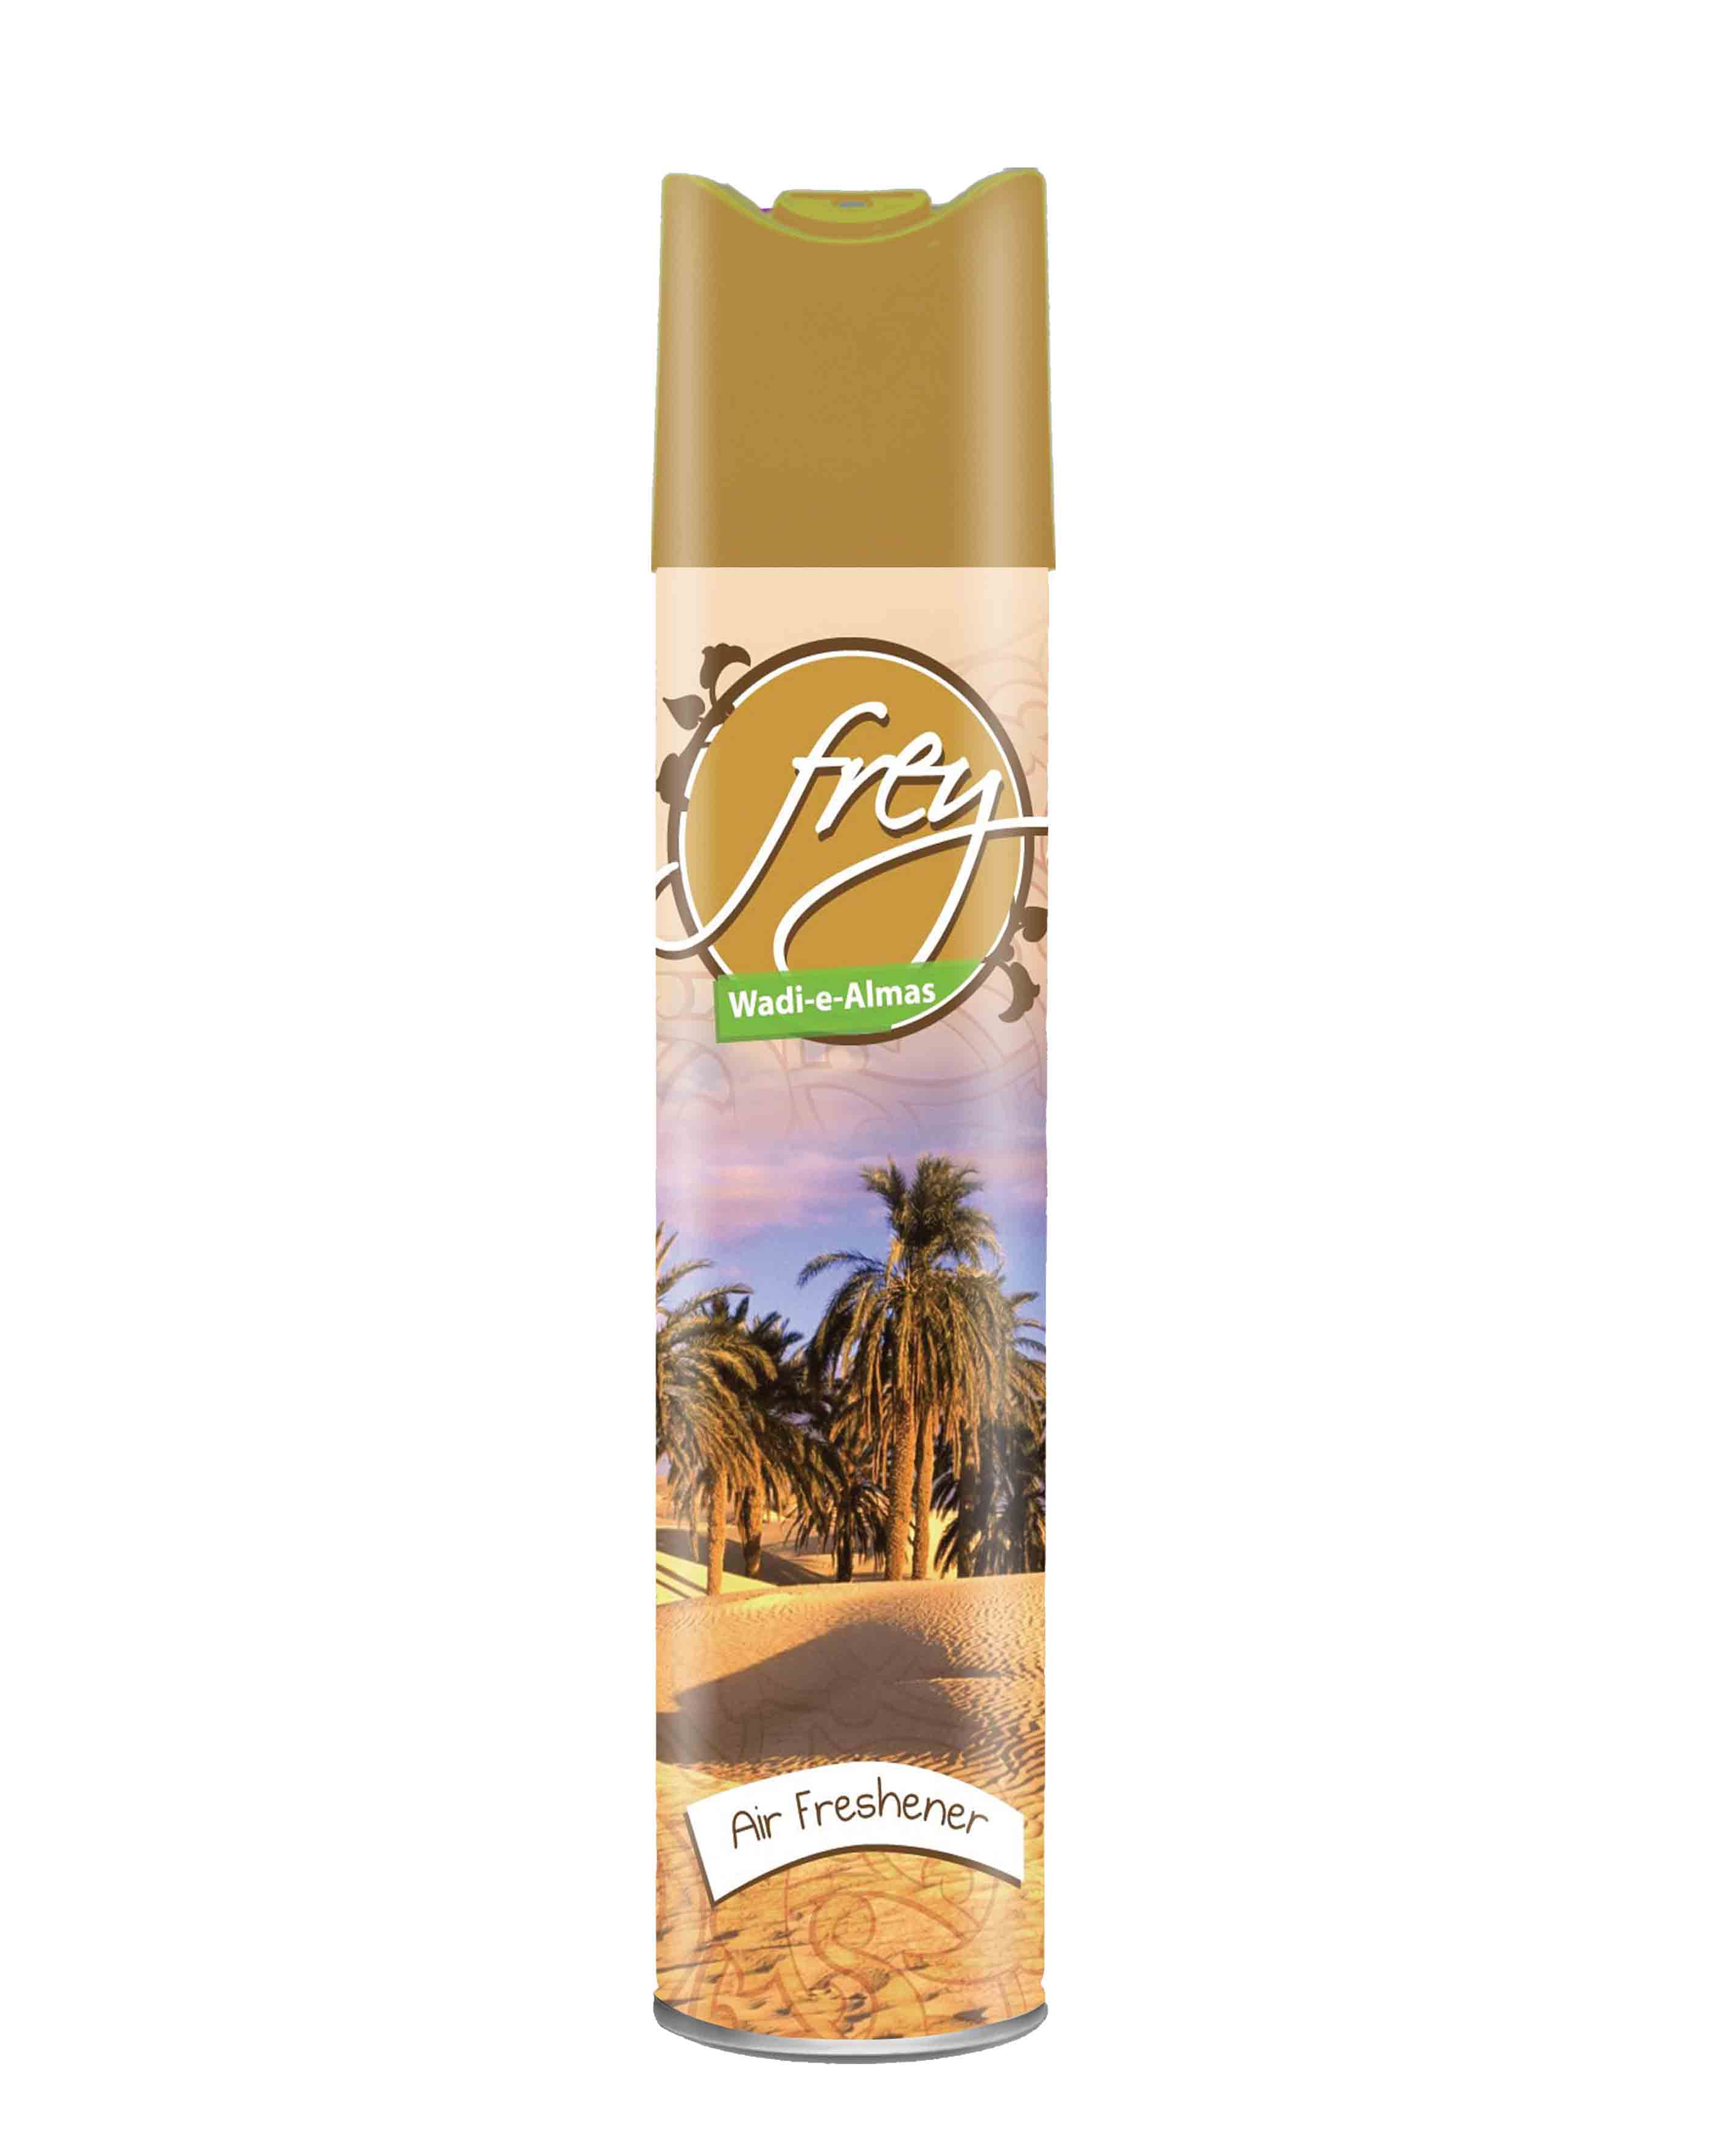 Frey Wadi e Almas Air Freshener 300ml